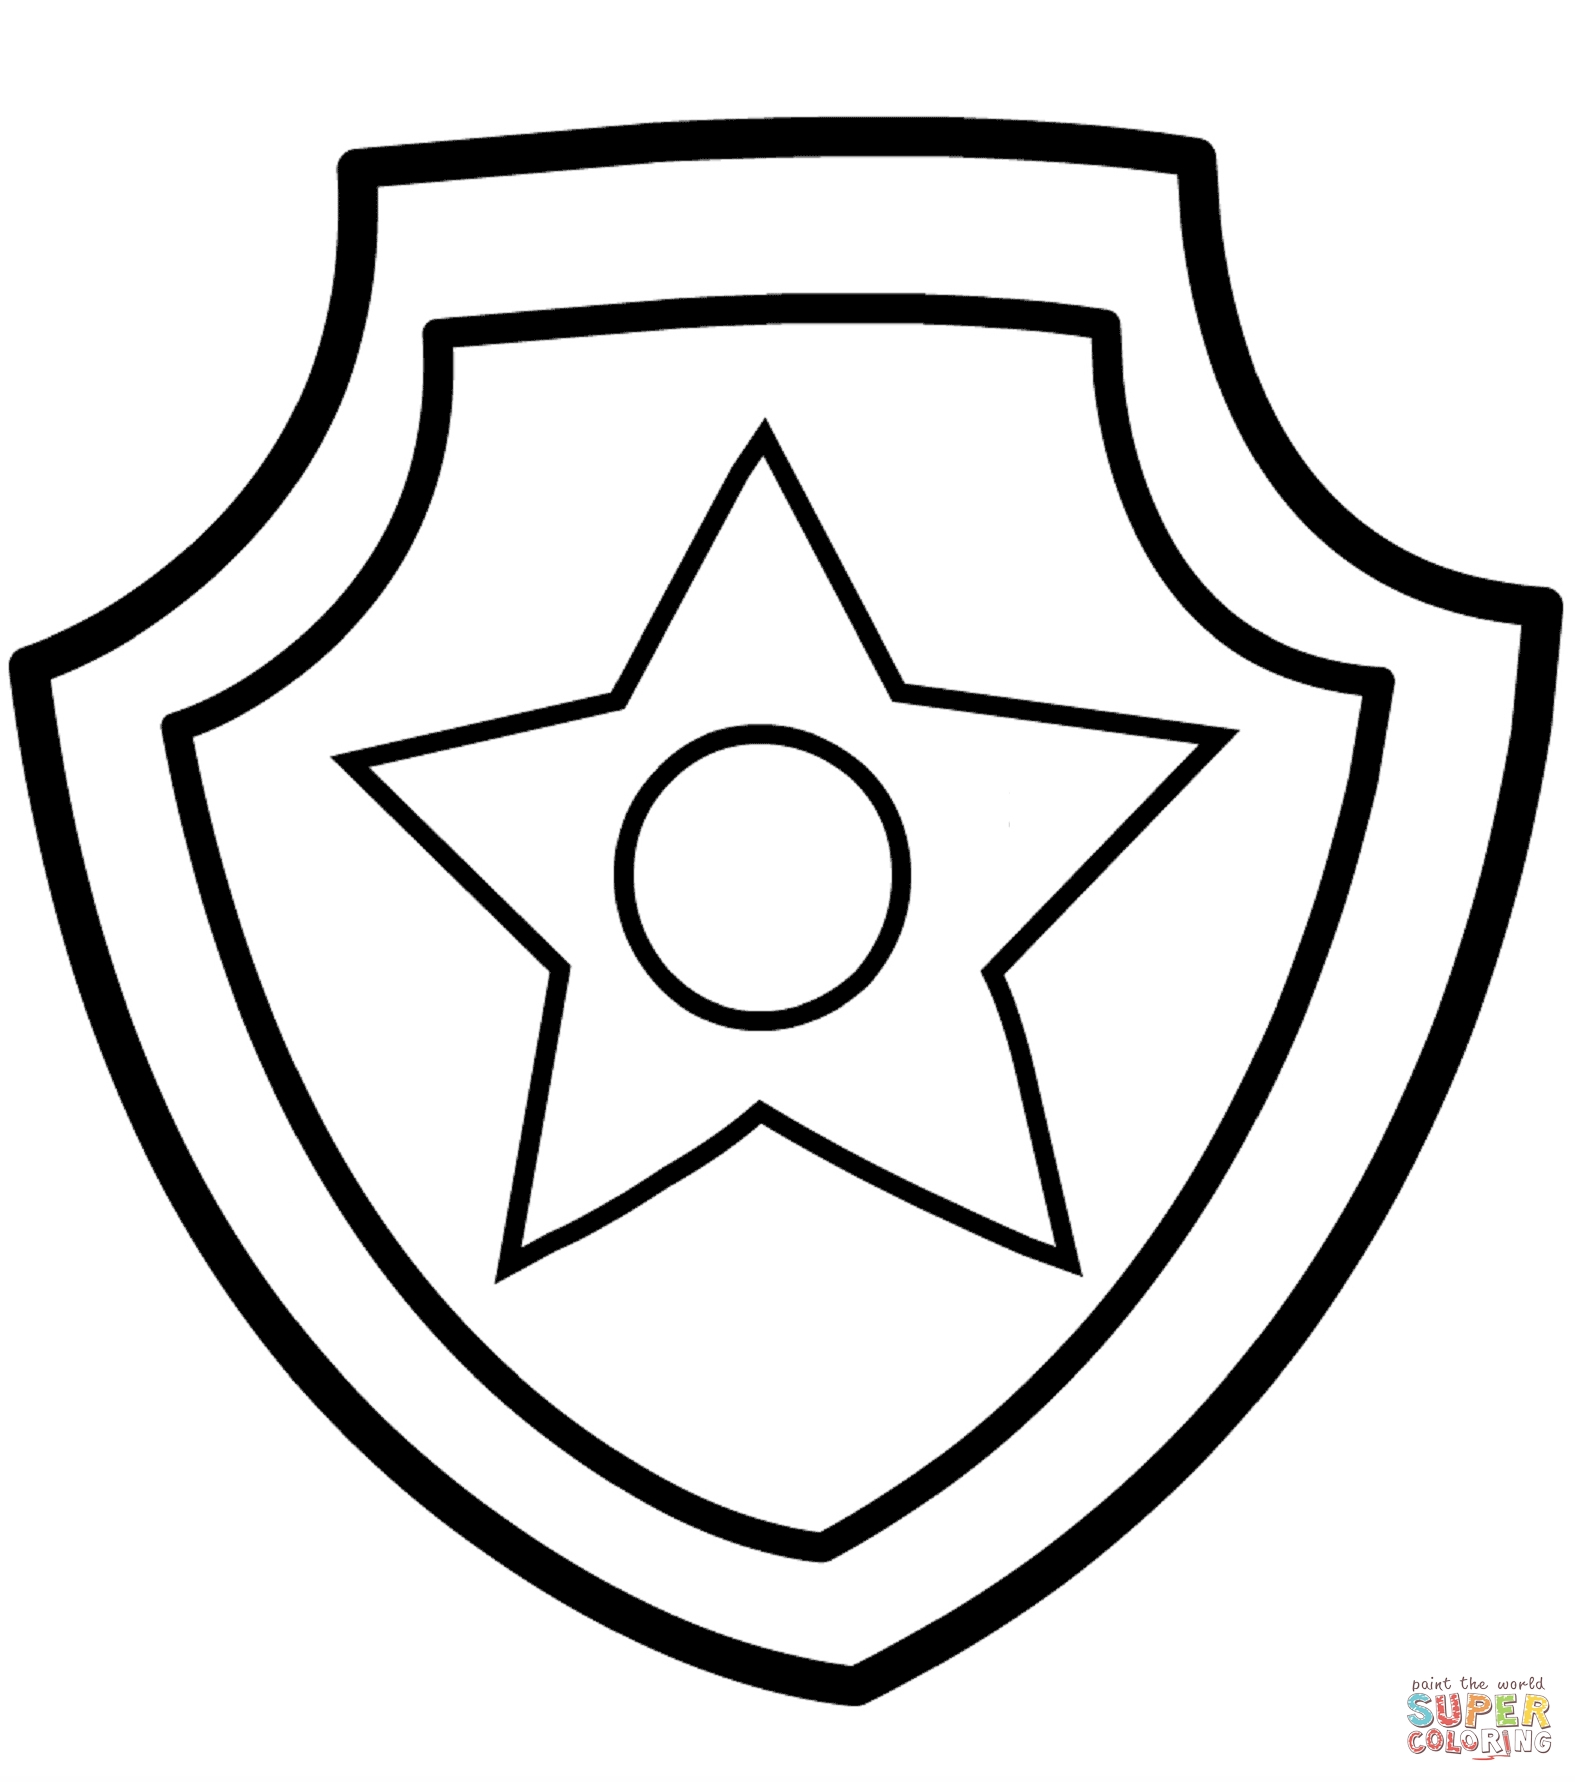 chase paw patrol coloring page - paw patrol chase badge